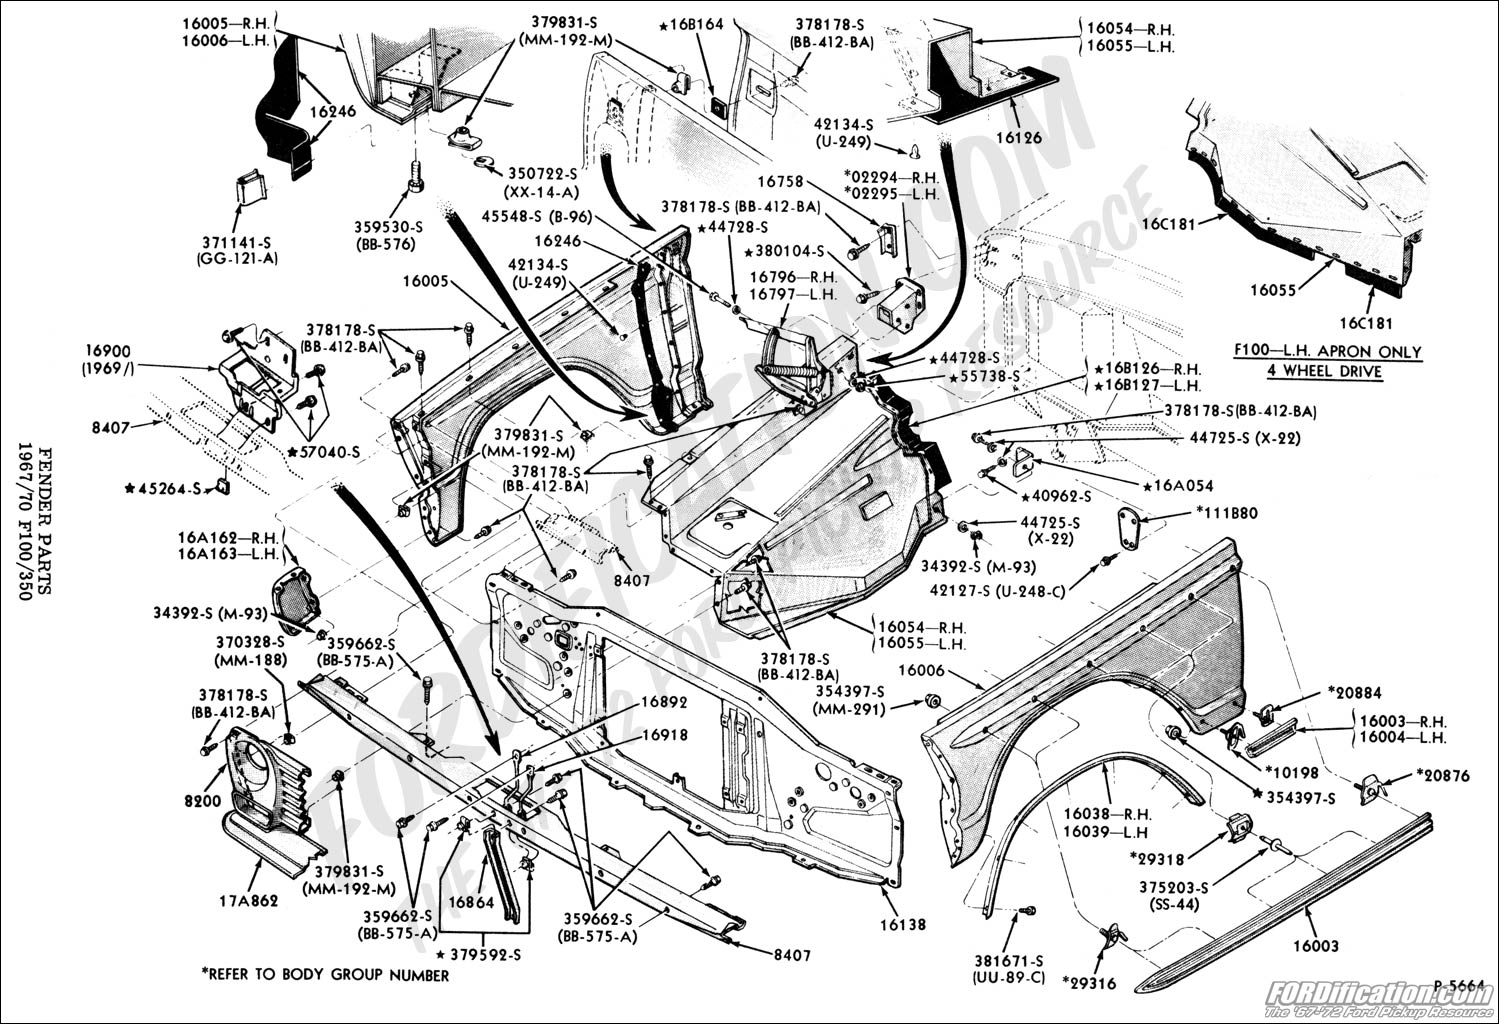 Ford F150 Body Parts Diagram on 1964 ford f100 wiring diagram for brakes